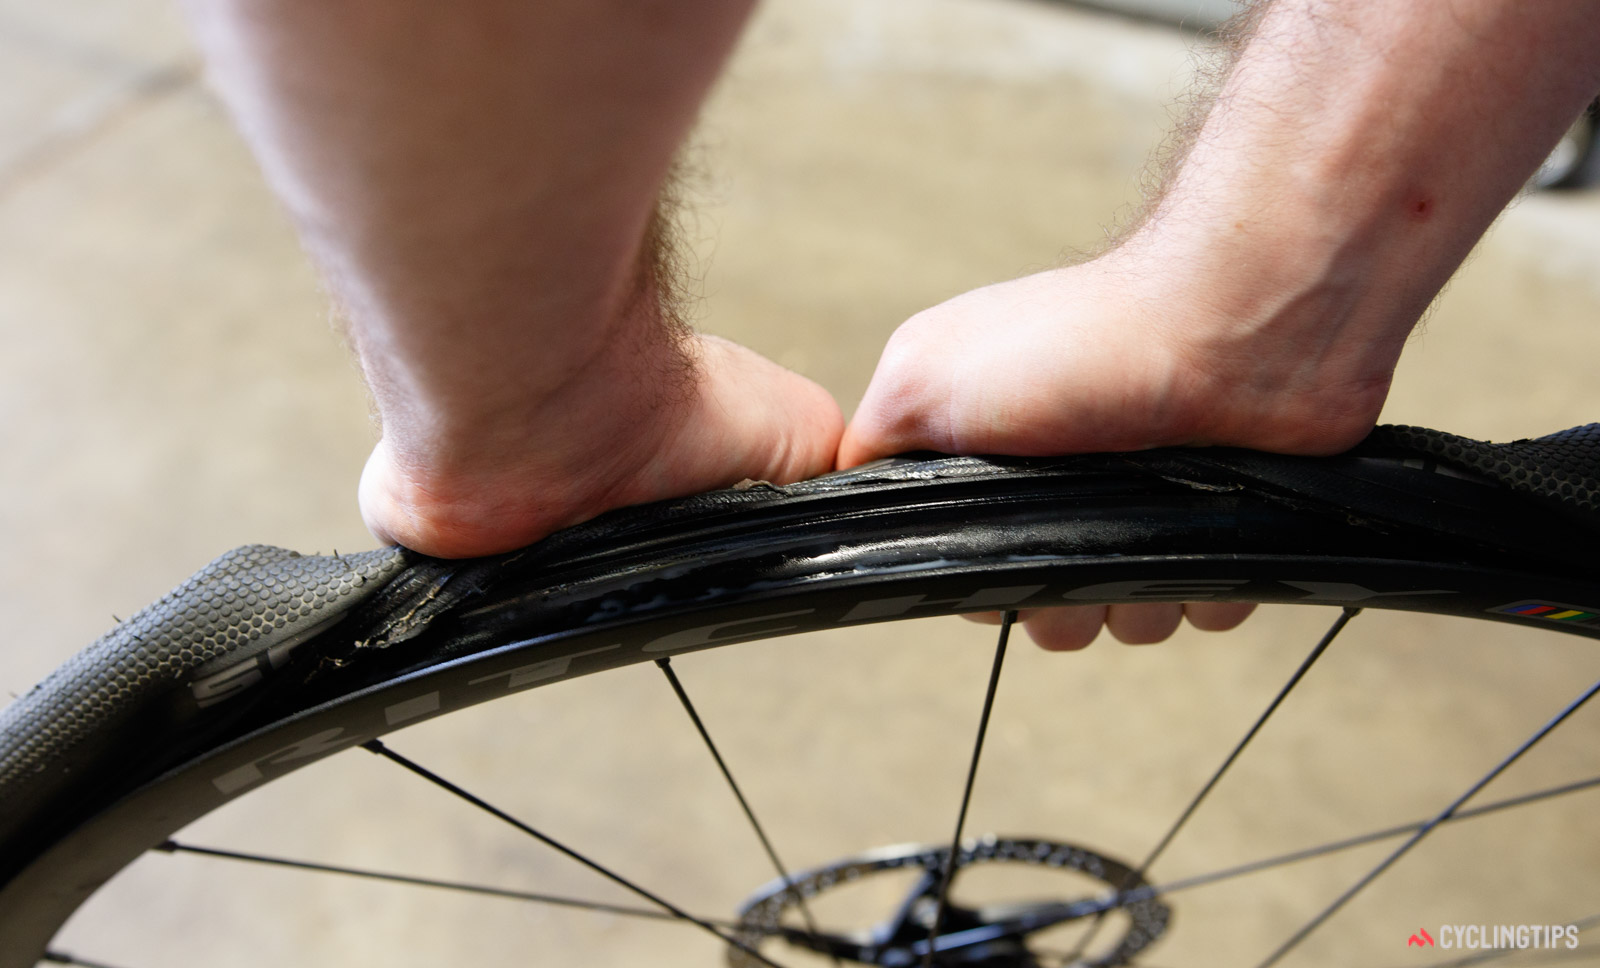 For taller tyres, you can use your palms for greater grip